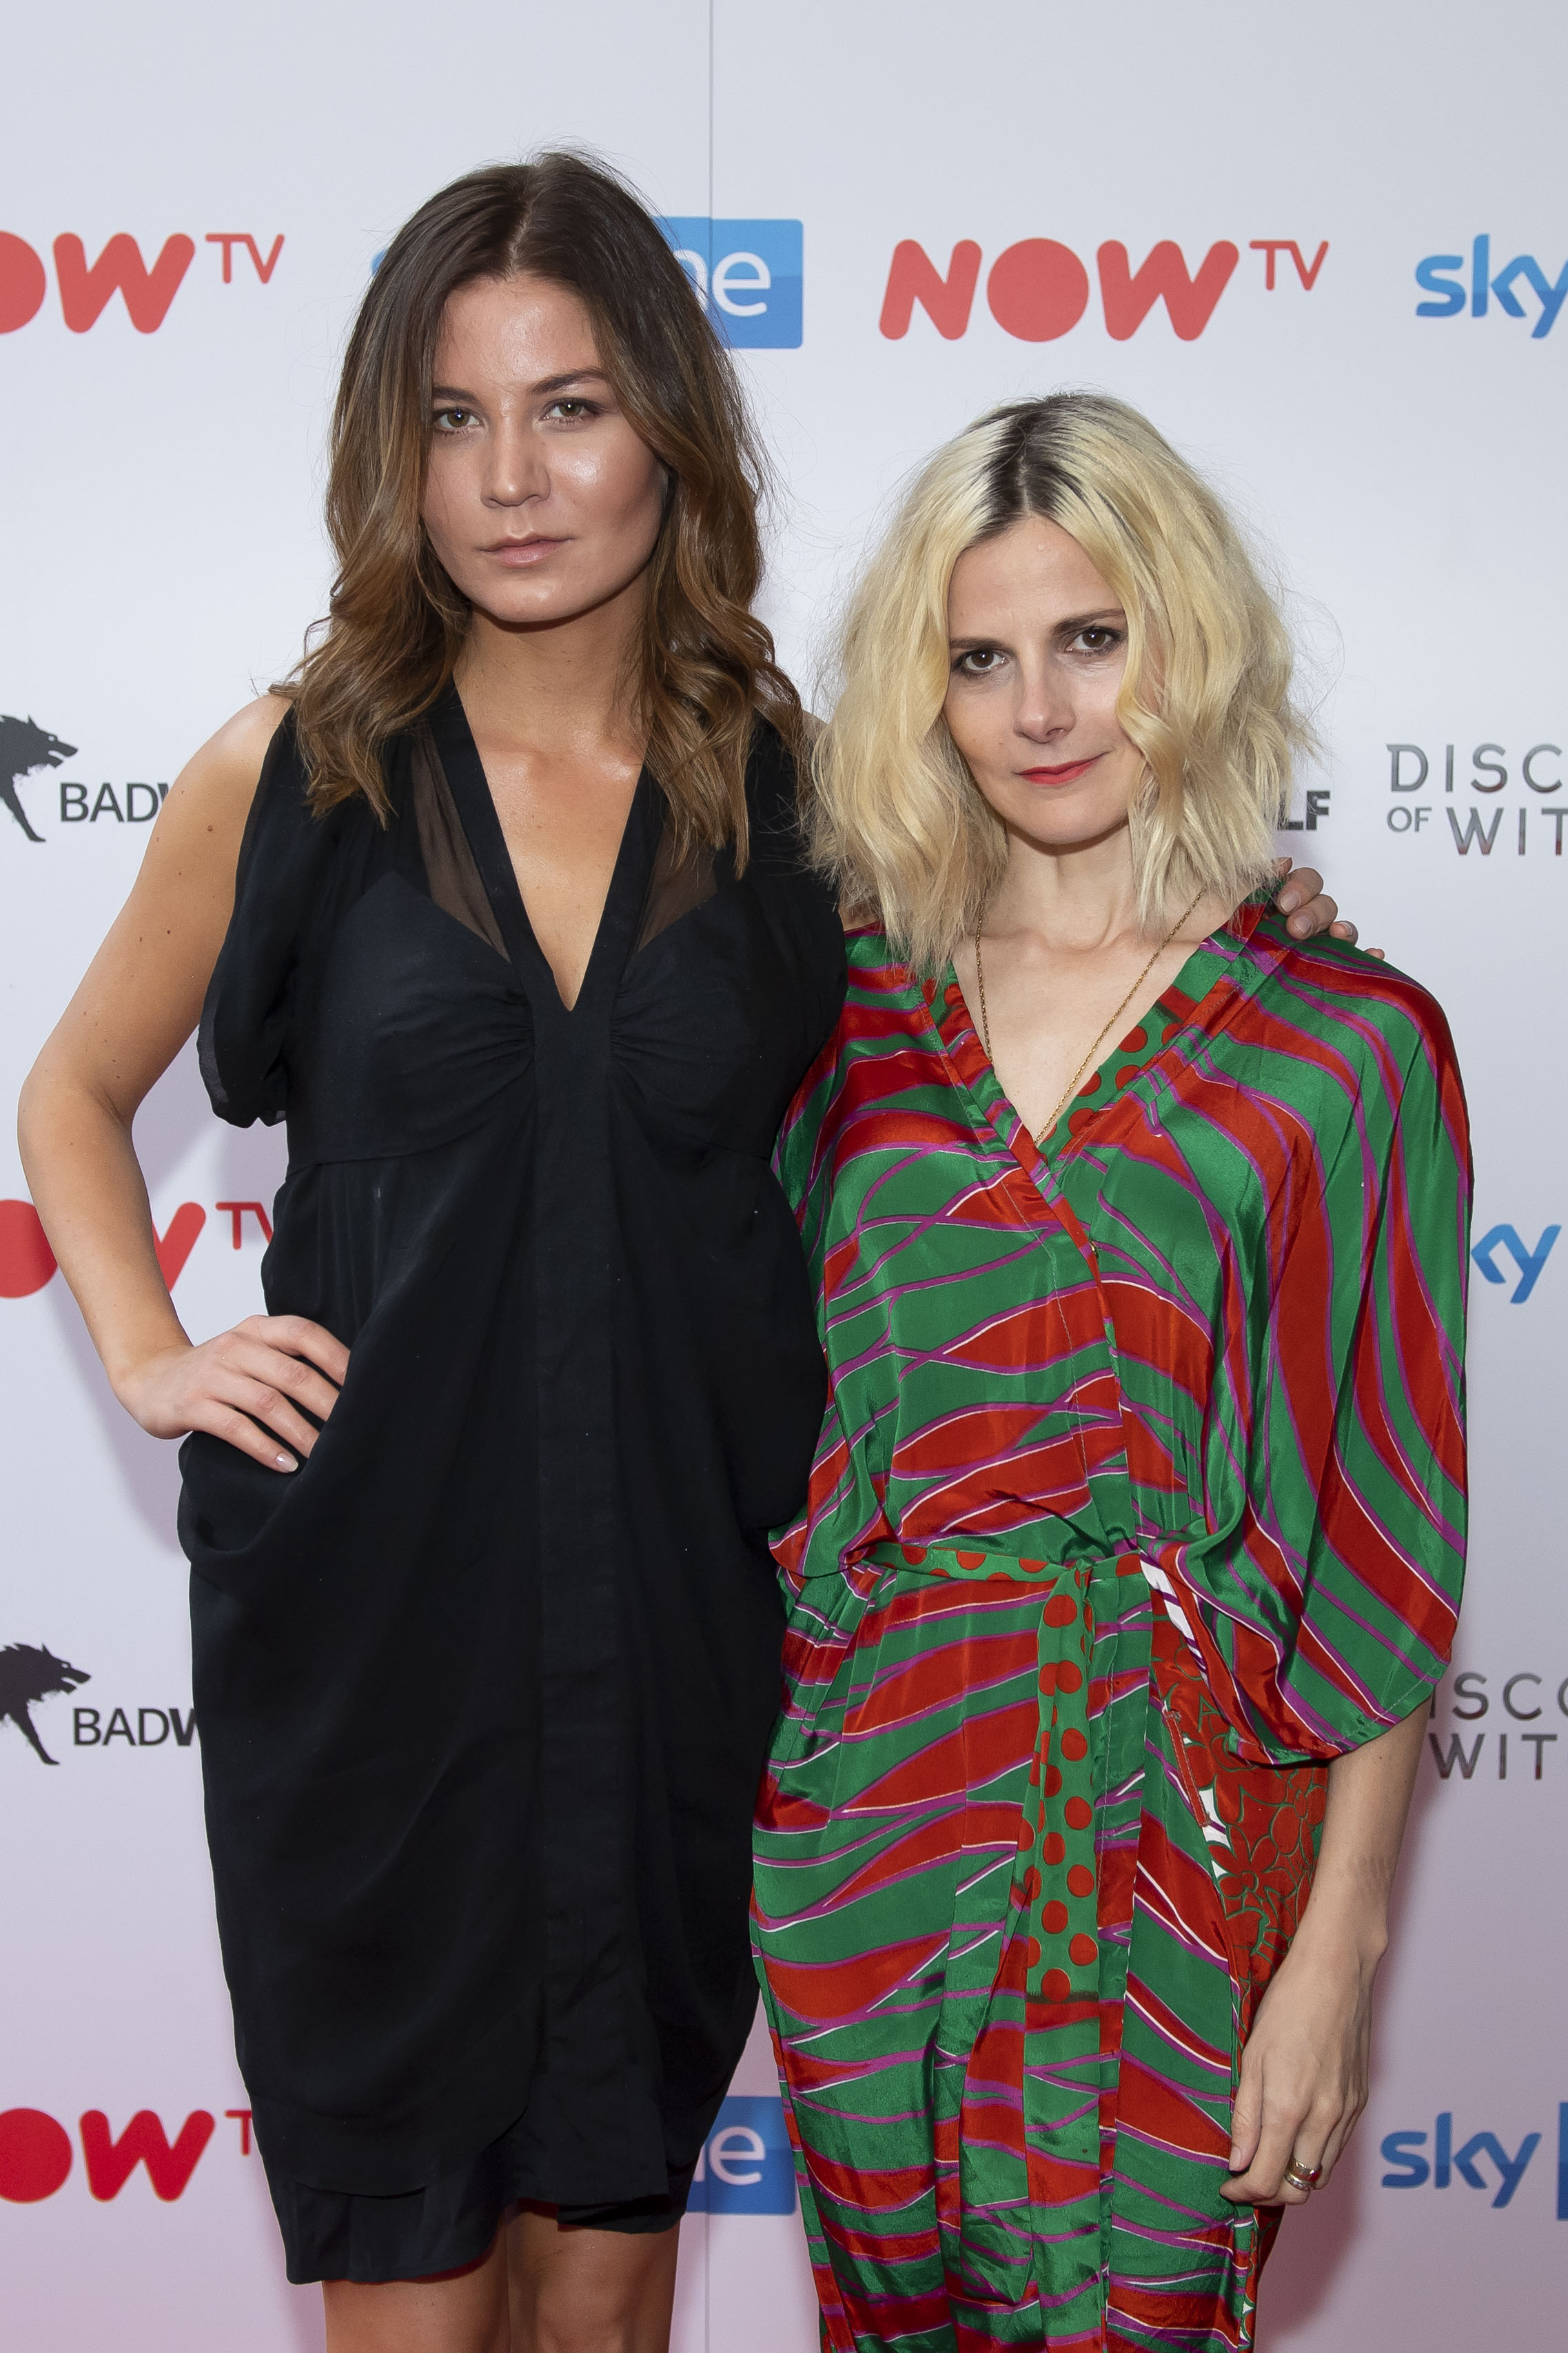 CARDIFF, WALES - SEPTEMBER 05: Malin Buska and Louise Brealey attend the UK Premiere of 'A Discovery Of Witches' at Cineworld on September 5, 2018 in Cardiff, Wales. (Photo by Matthew Horwood/Getty Images)